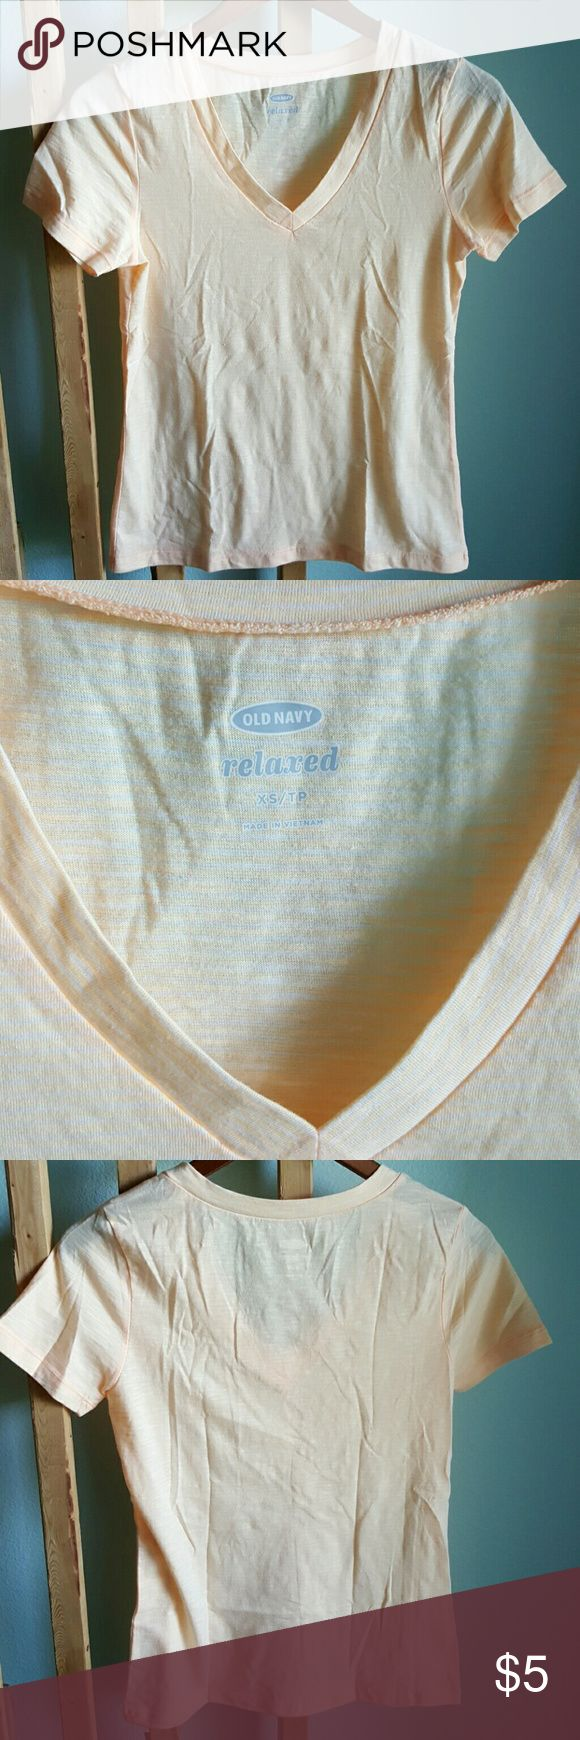 Old Navy Relaxed Tee NWOT Super comfy, relaxed tee from Old Navy! Never been worn and no flaws. Just trying to make room in my dresser.   The color isn't depicted well in the pictures, but it's more of a light peach color than yellow or orange. Old Navy Tops Tees - Short Sleeve